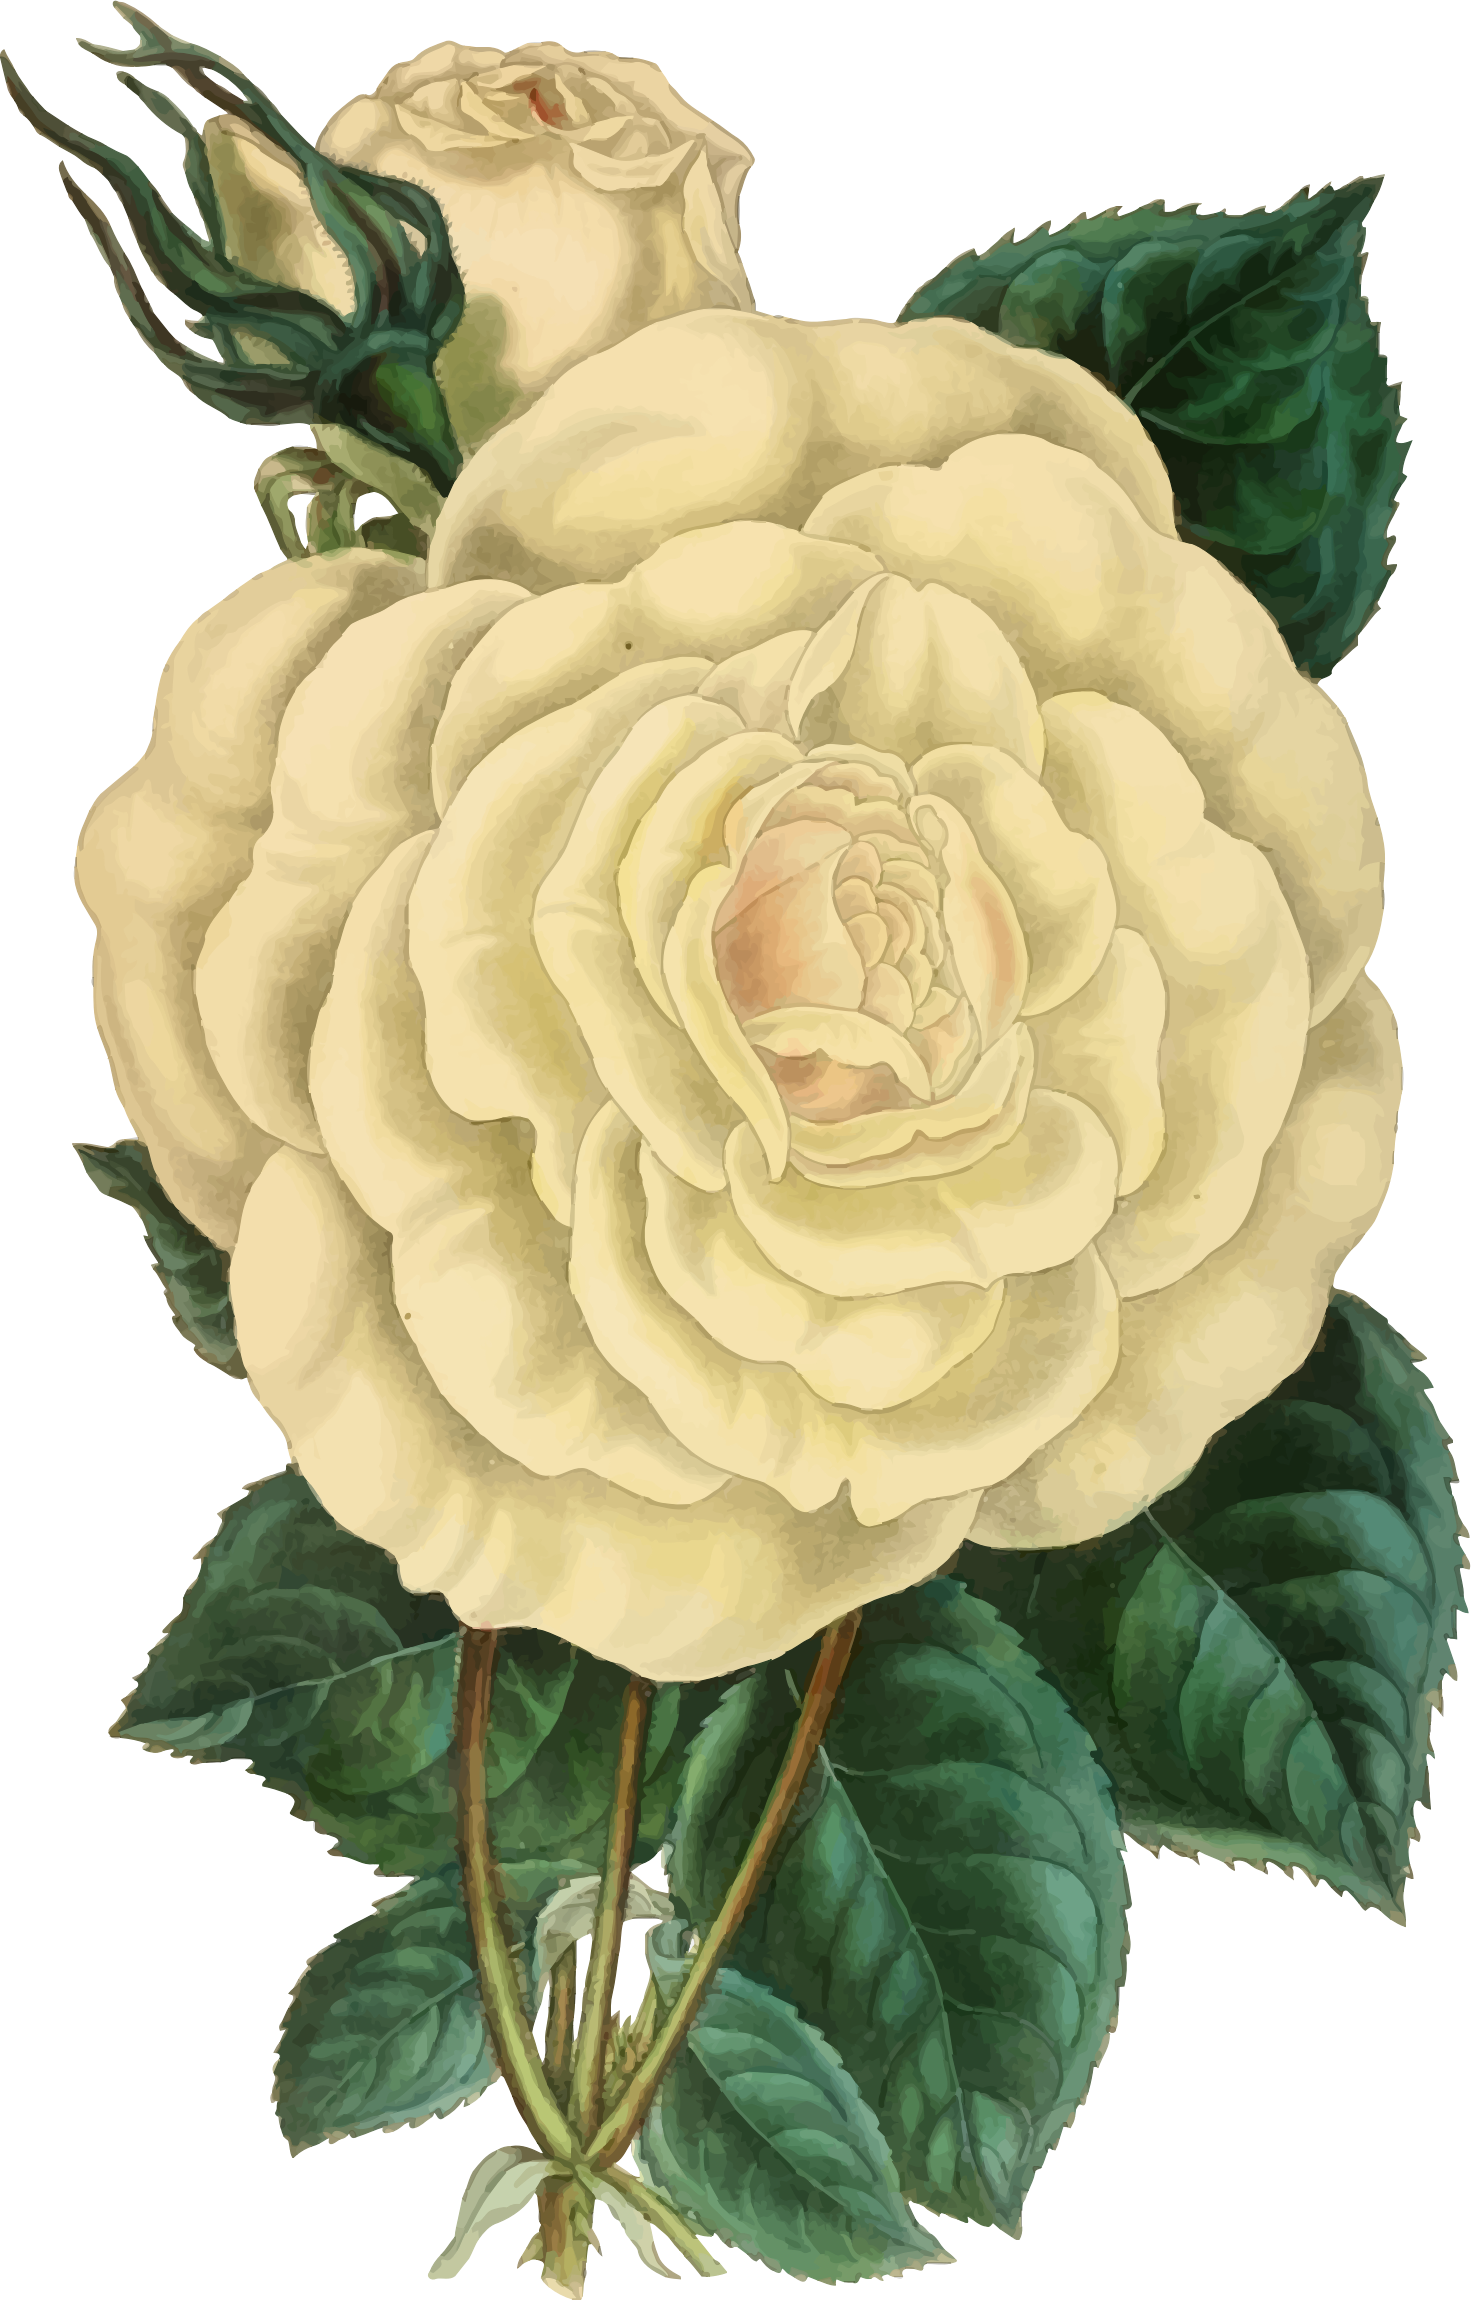 Vintage Rose Illustration by GDJ